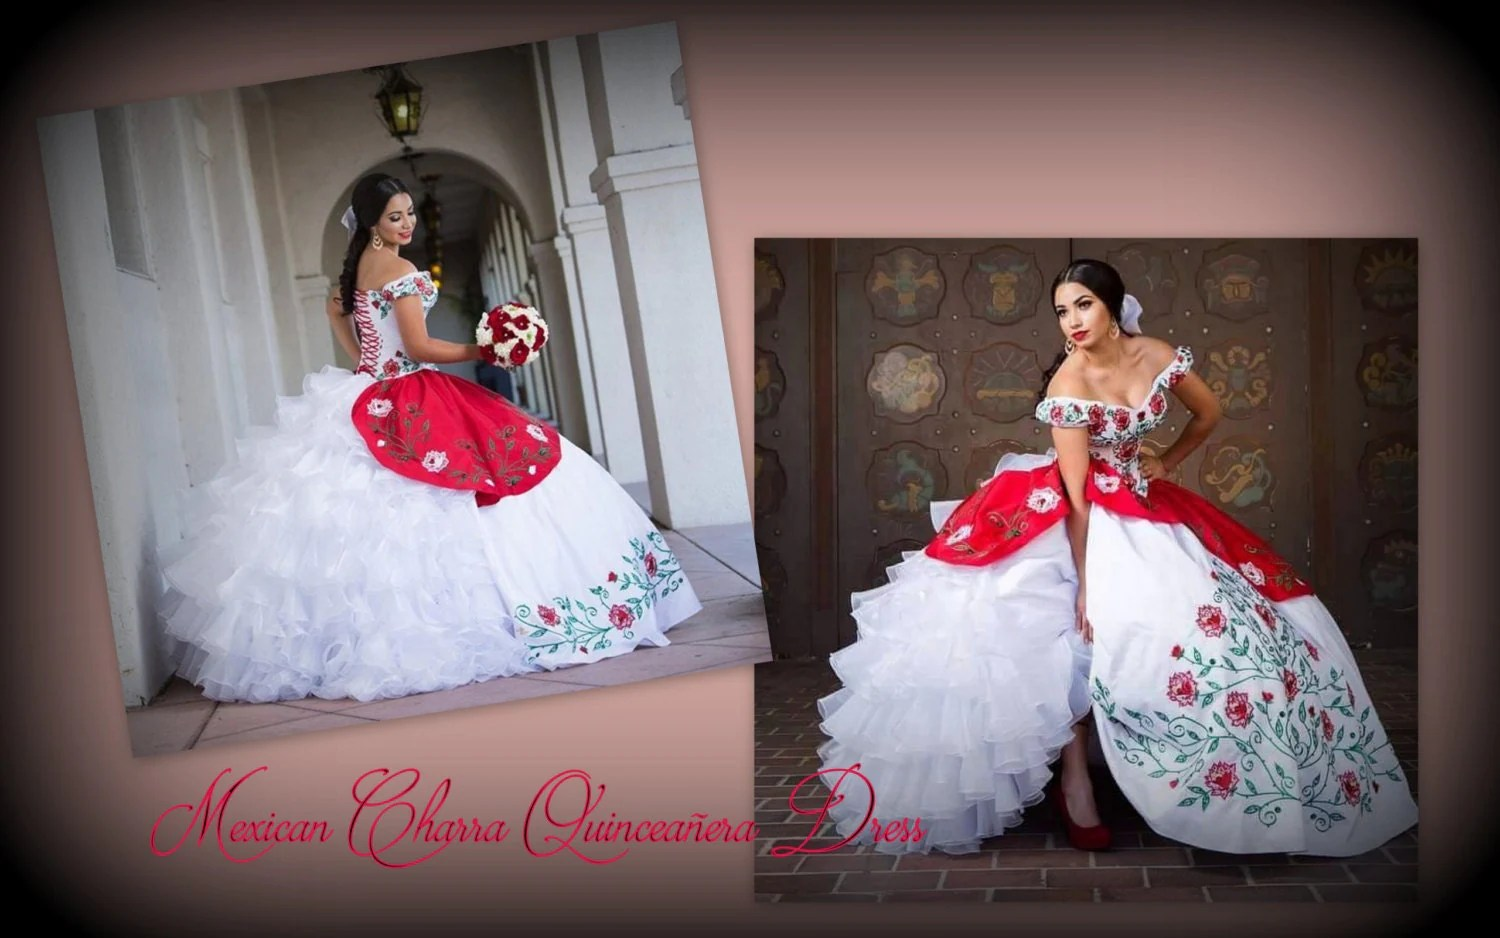 mexican wedding dress peasant style wedding dress Charra Inspired Quincea era Luxurious Bow Multilayered Mexican Quinceanera Dress Quince Dress Vestido Mexicano